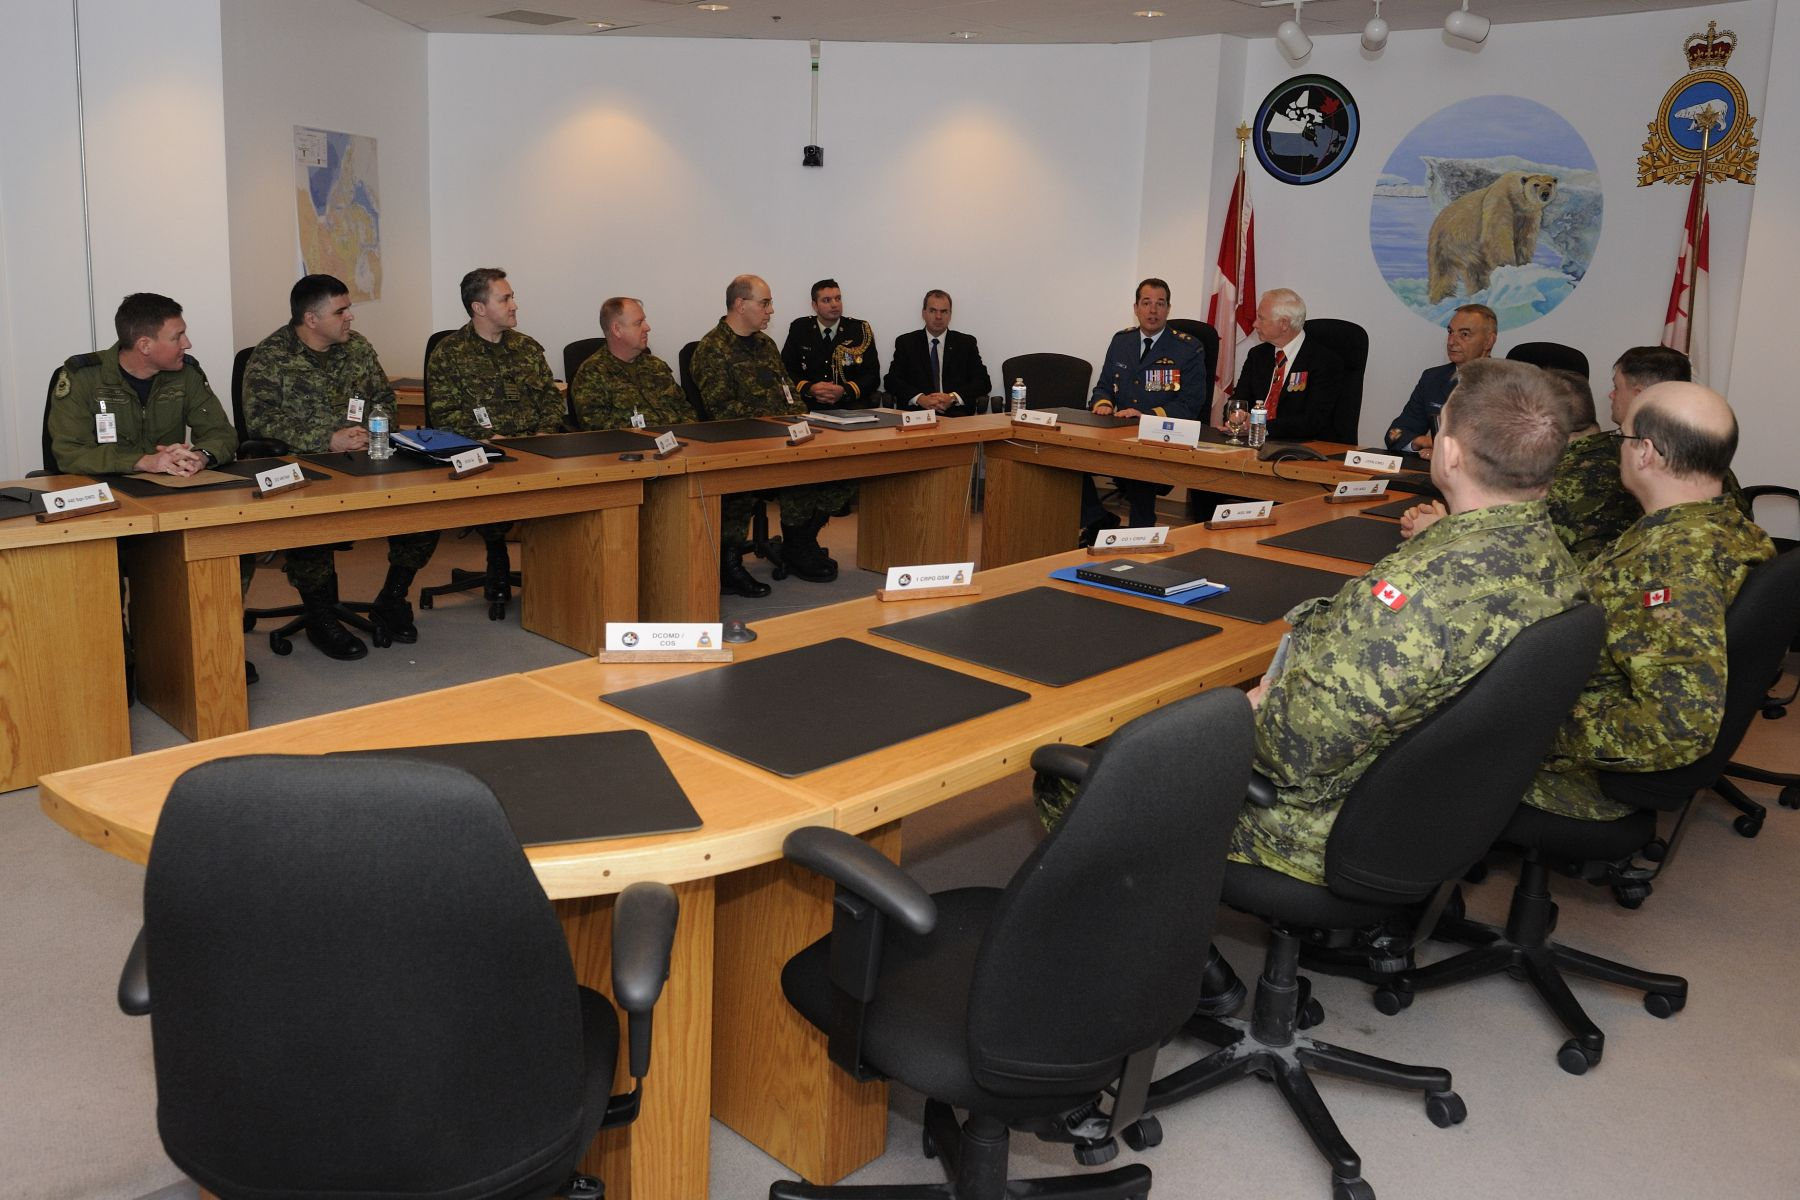 He then attended a briefing led by Brigadier-General Guy Hamel who provided an overview of the Canadian Forces' operations and administration in northern Canada, followed by a presentation of the Canadian Rangers in the North.